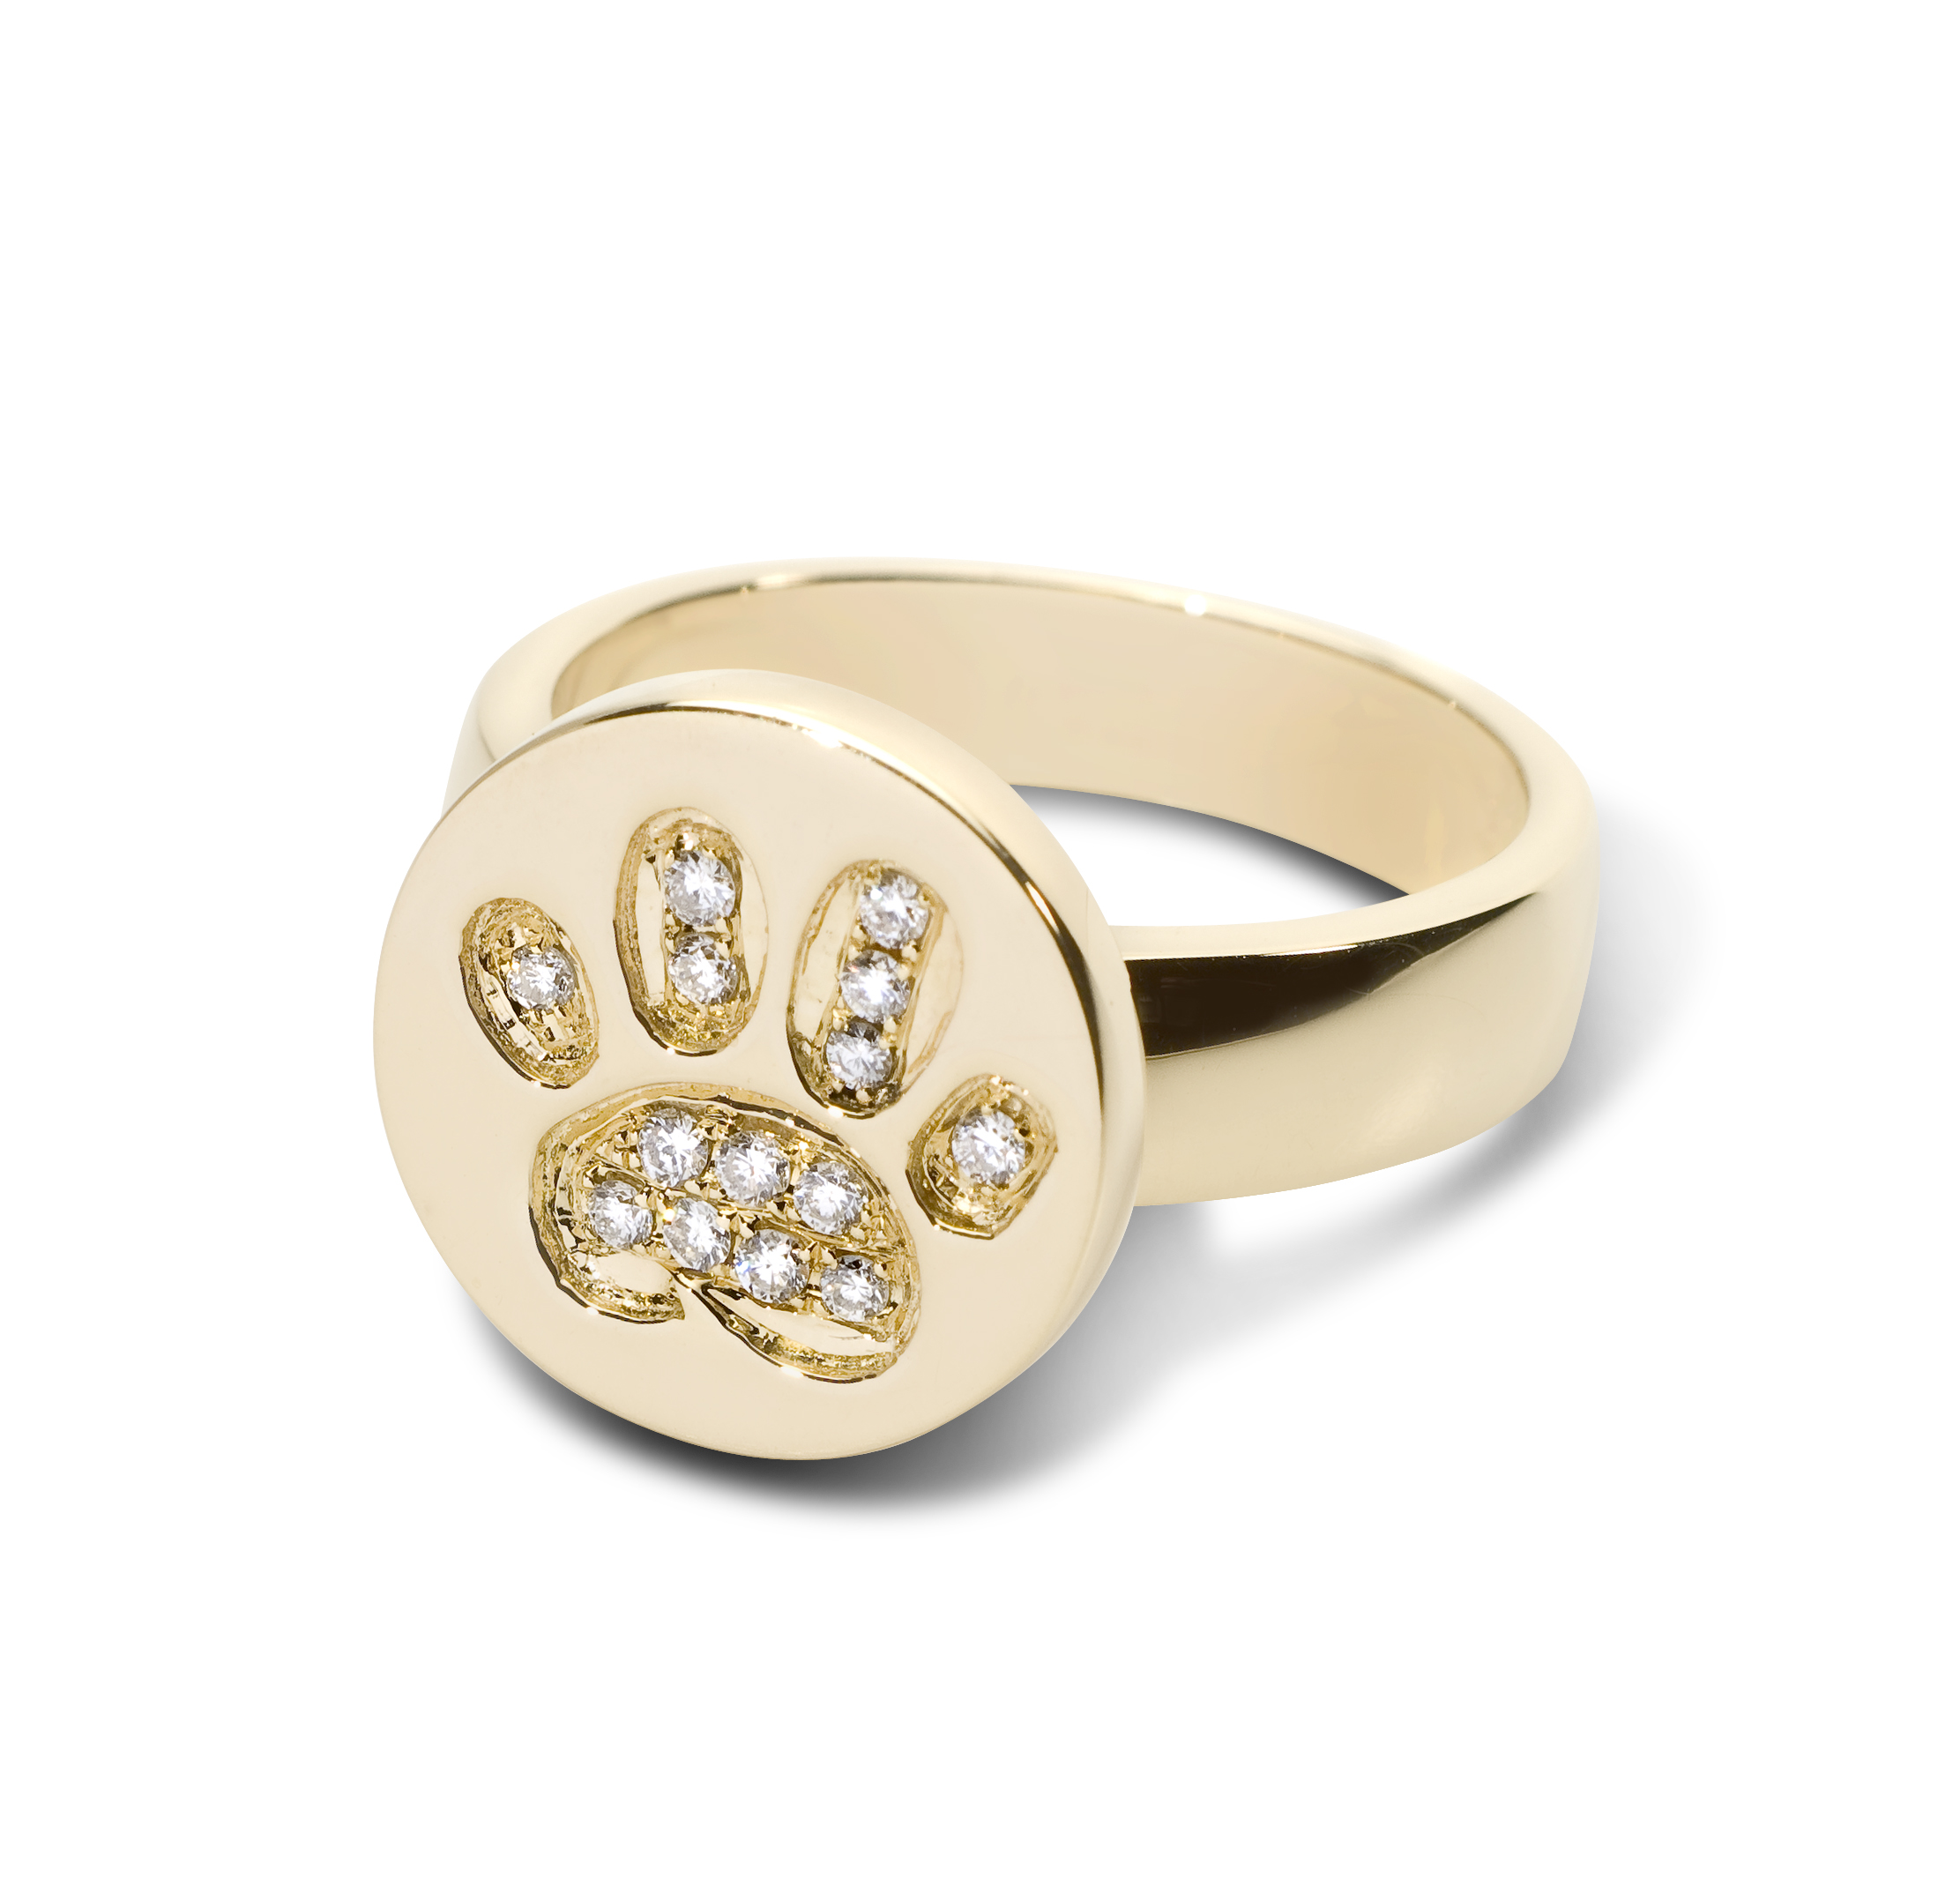 dia welch product lisa rings engagement designs themed yg paw kt ring diamond print